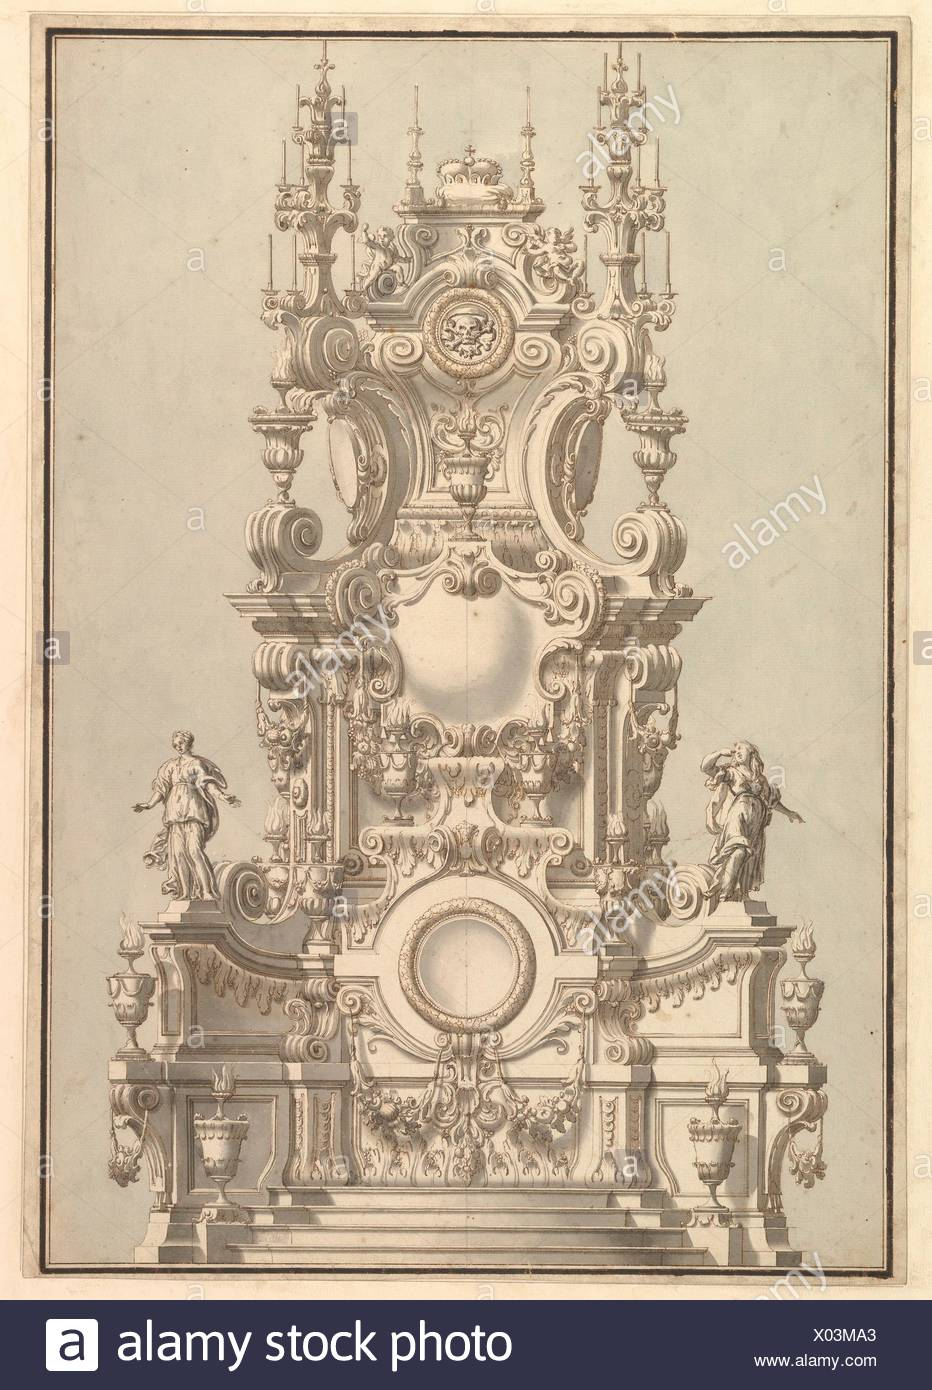 Elevation of a Catafalque, Surmounted by a Royal Crown, with Scull and Cross Bones in Wreath-Encircled Cartouche just below. Artist: Workshop of - Stock Image